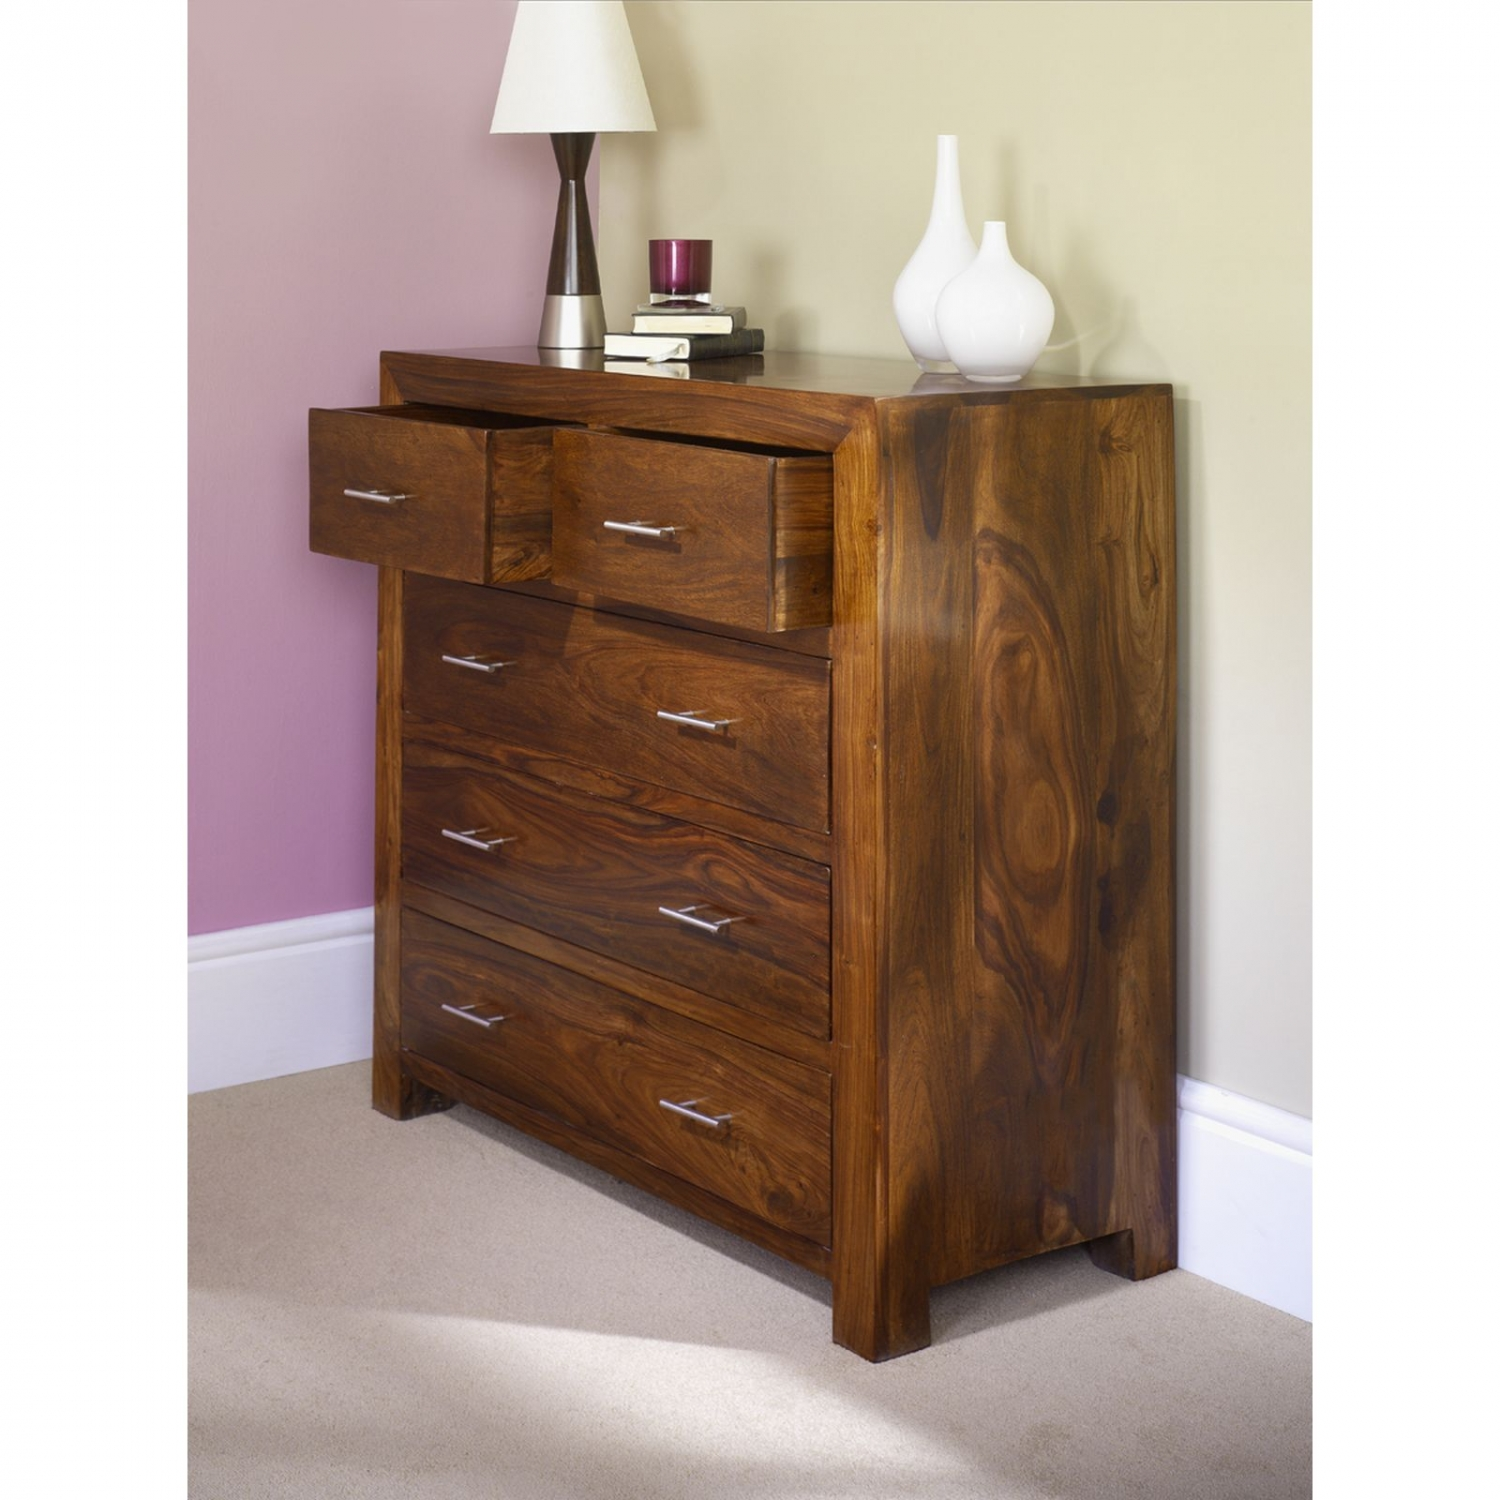 Mysore Solid Sheesham Furniture 2 Over 3 Bedroom Chest Of Drawers EBay